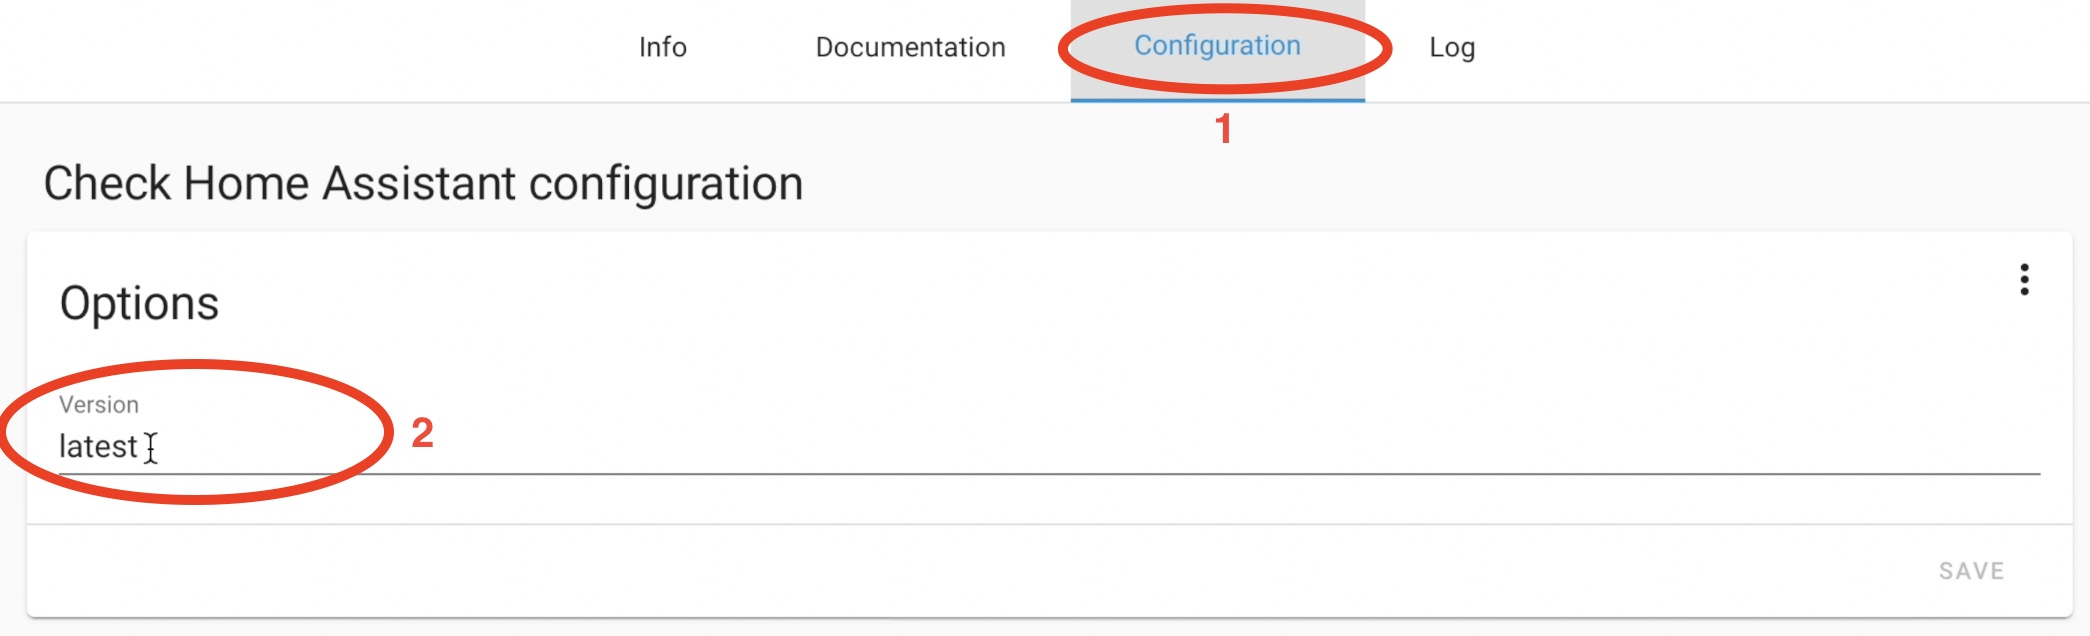 Check Home Assistant add-on Configuration tab is the place where you can enter the desired Home Assistant version that the add-on will verify.